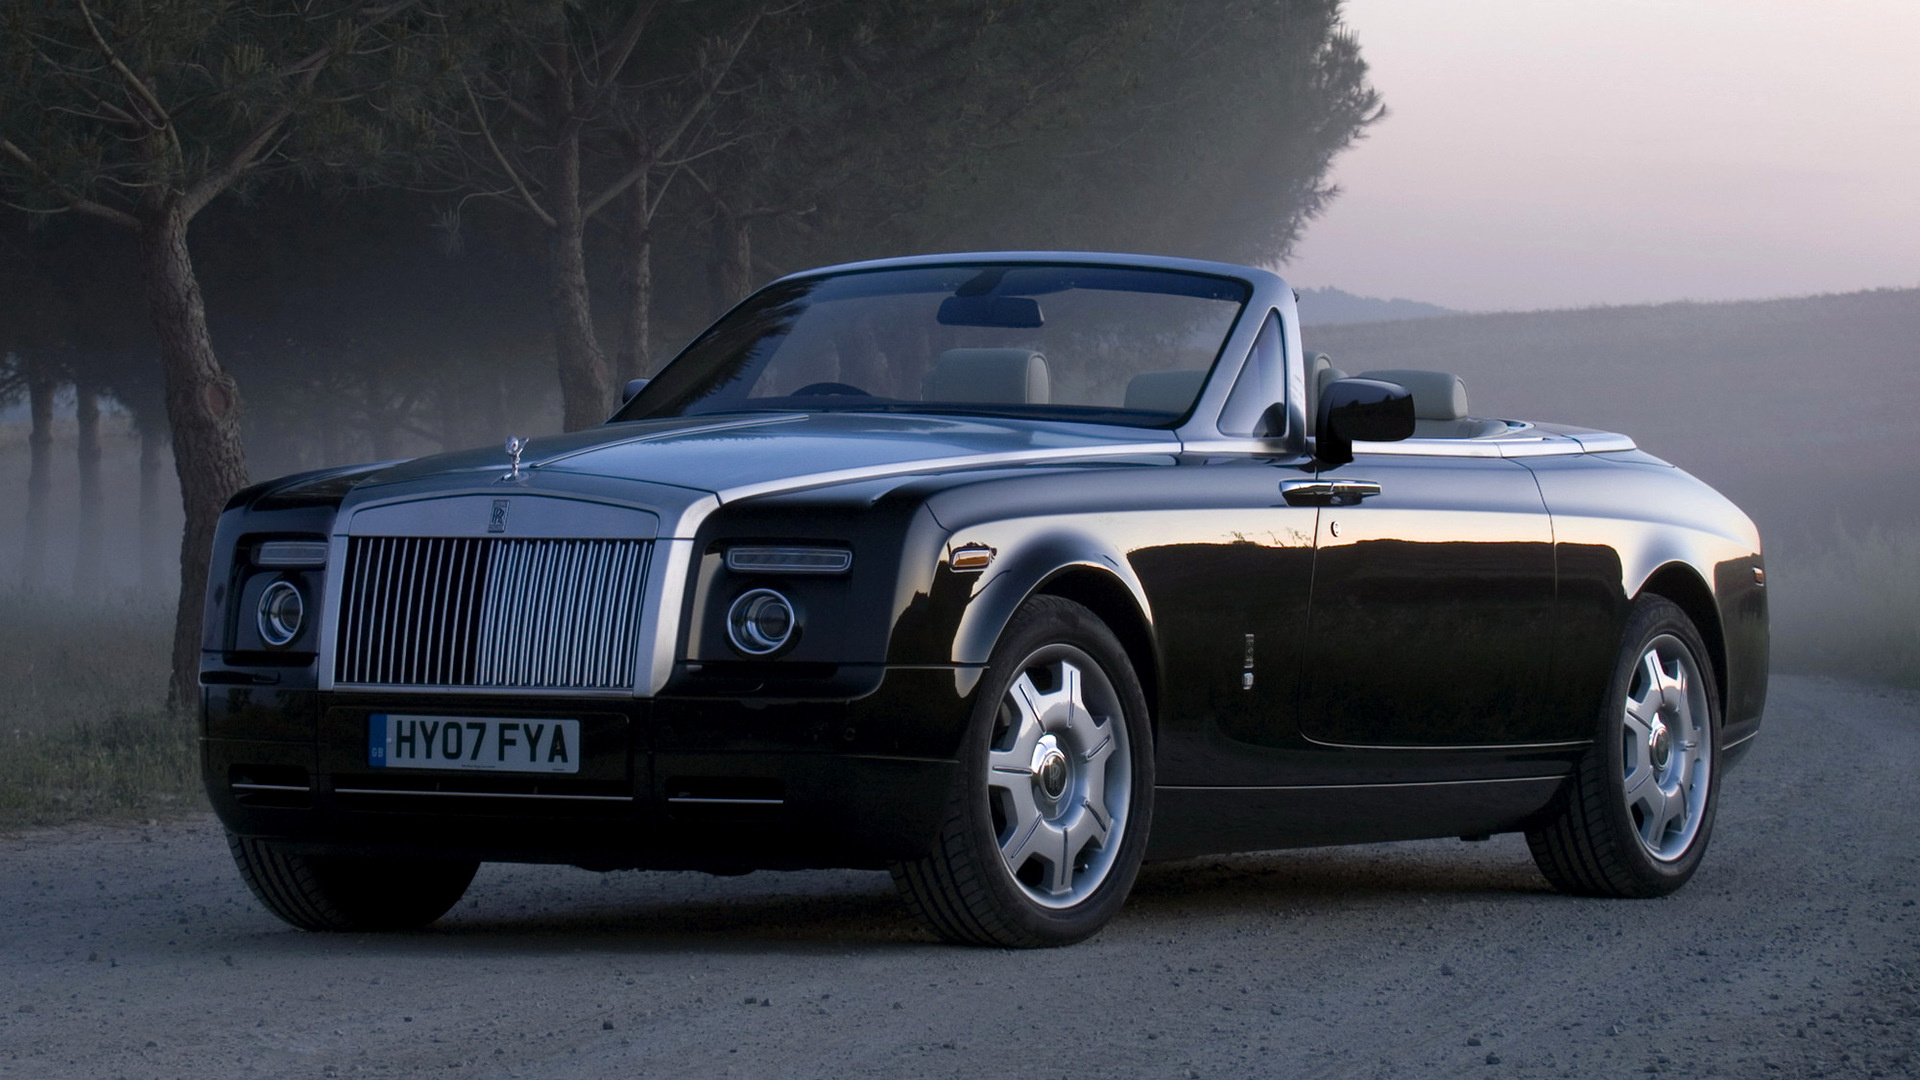 Rolls Royce Phantom Drophead Coupe 2008 Wallpapers And